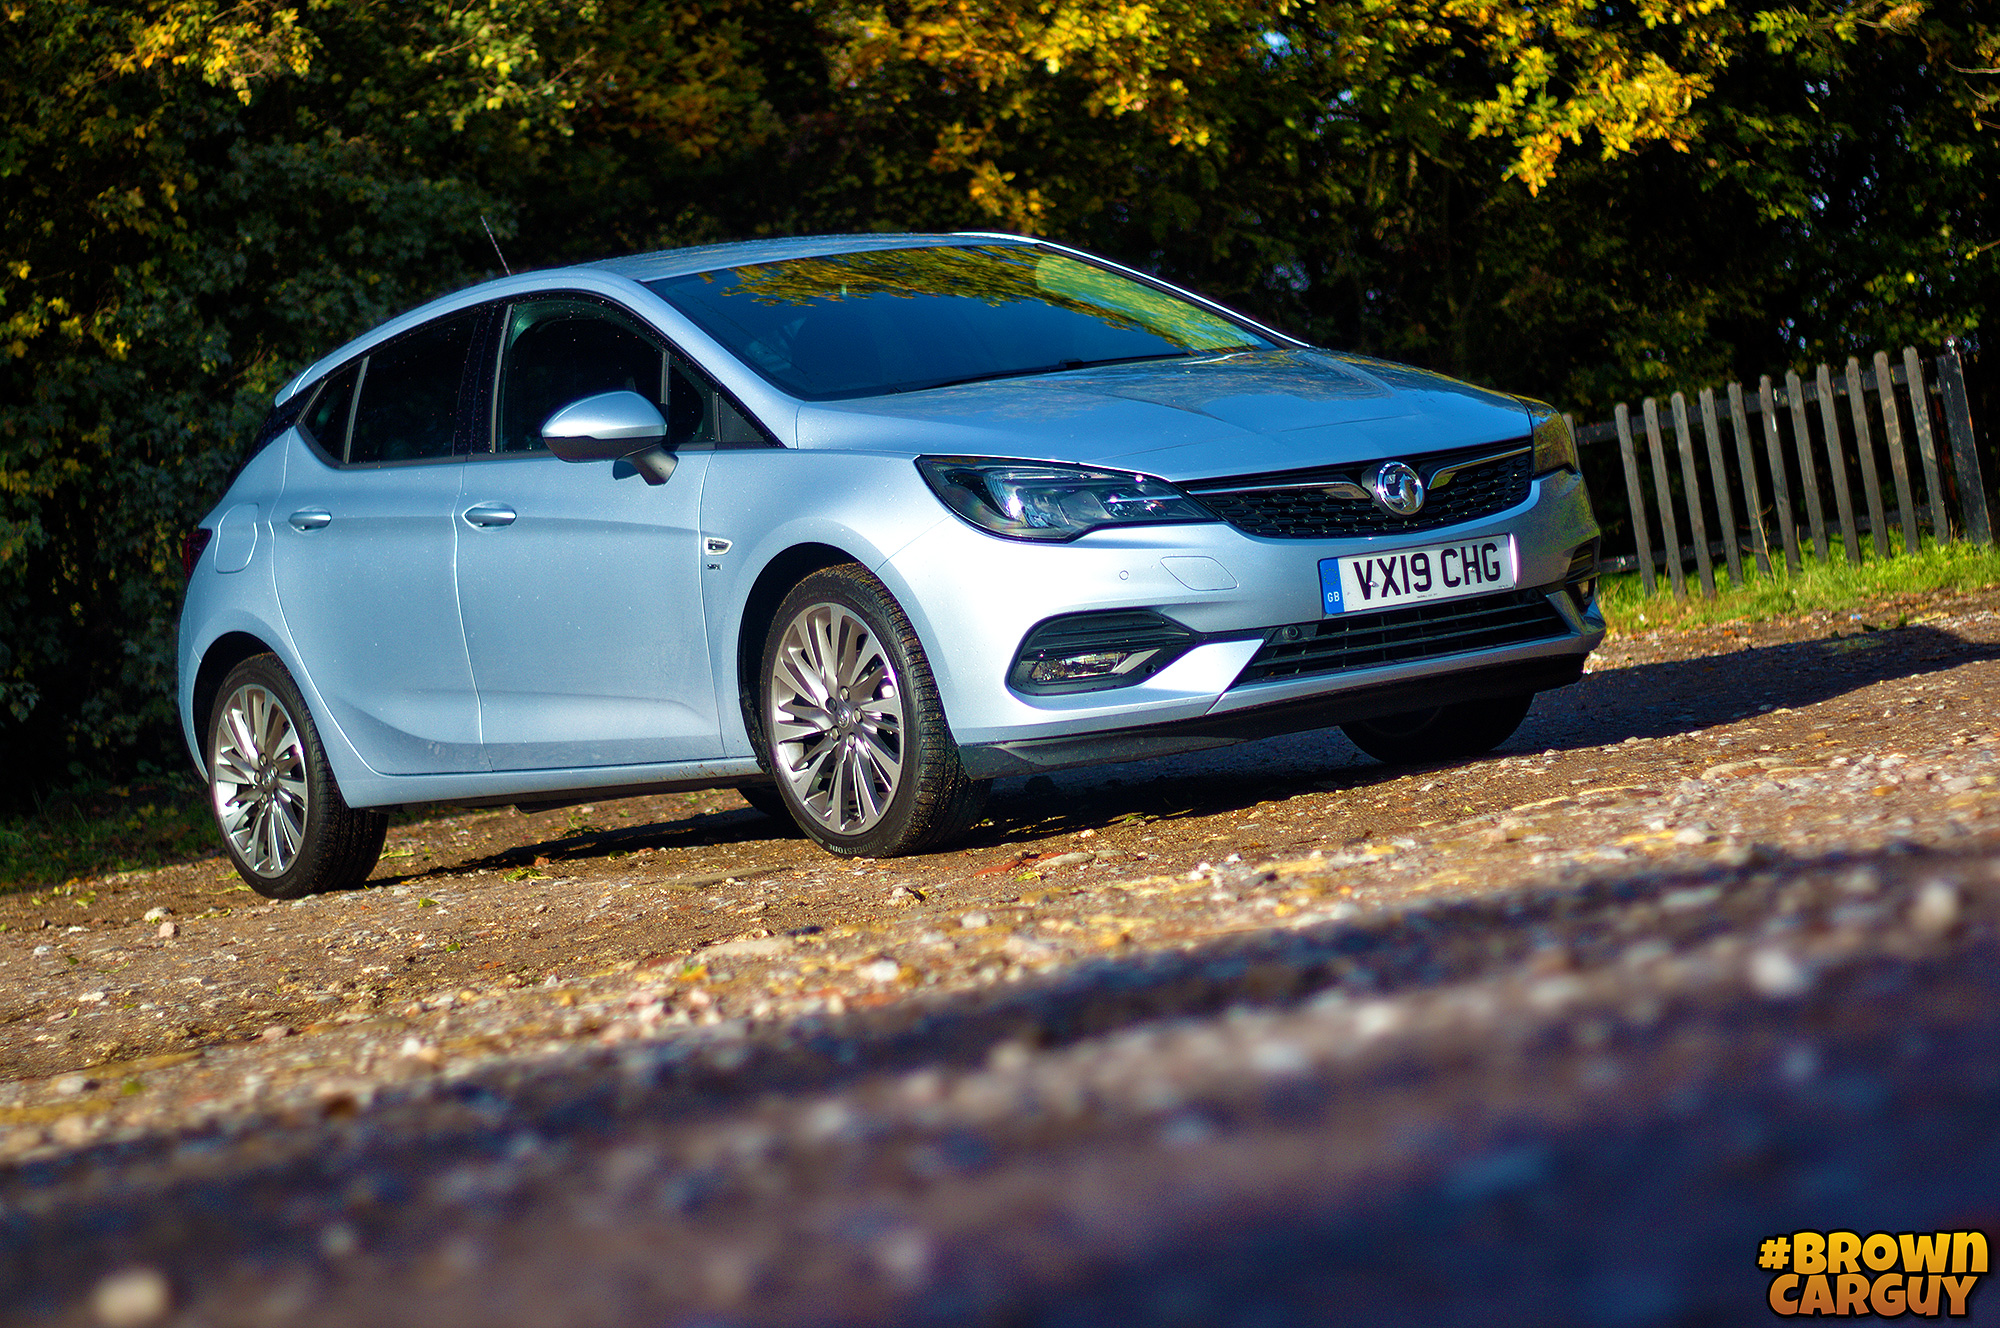 Review: Vauxhall Astra SRi 1.4 Turbo Hatchback - Brown Car Guy